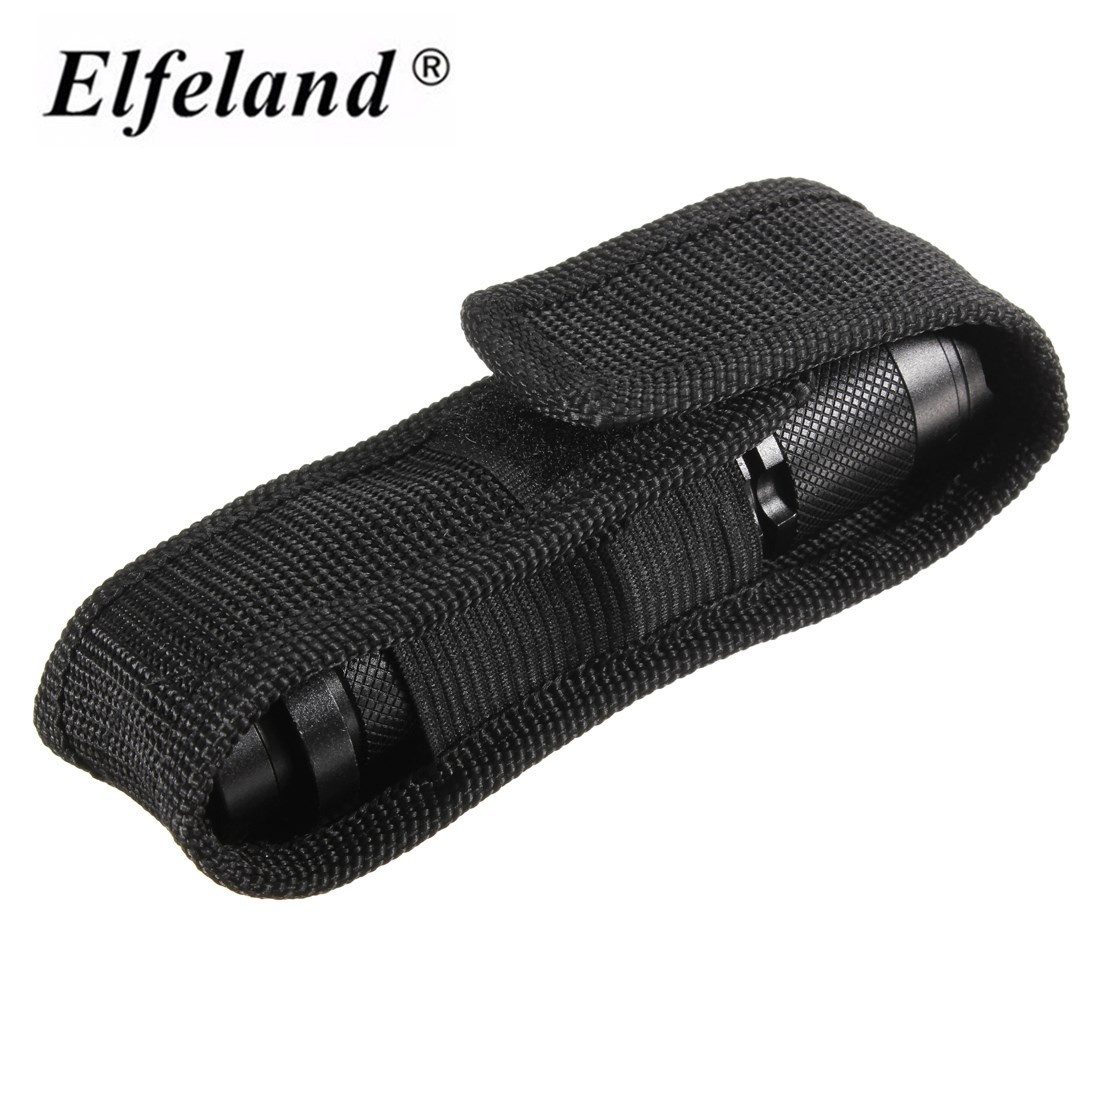 1pcs 13cm Black Nylon Holster Cover Belt High quality Pouch for LED Torch Flashlight for Most 18650 flashlight Accessories